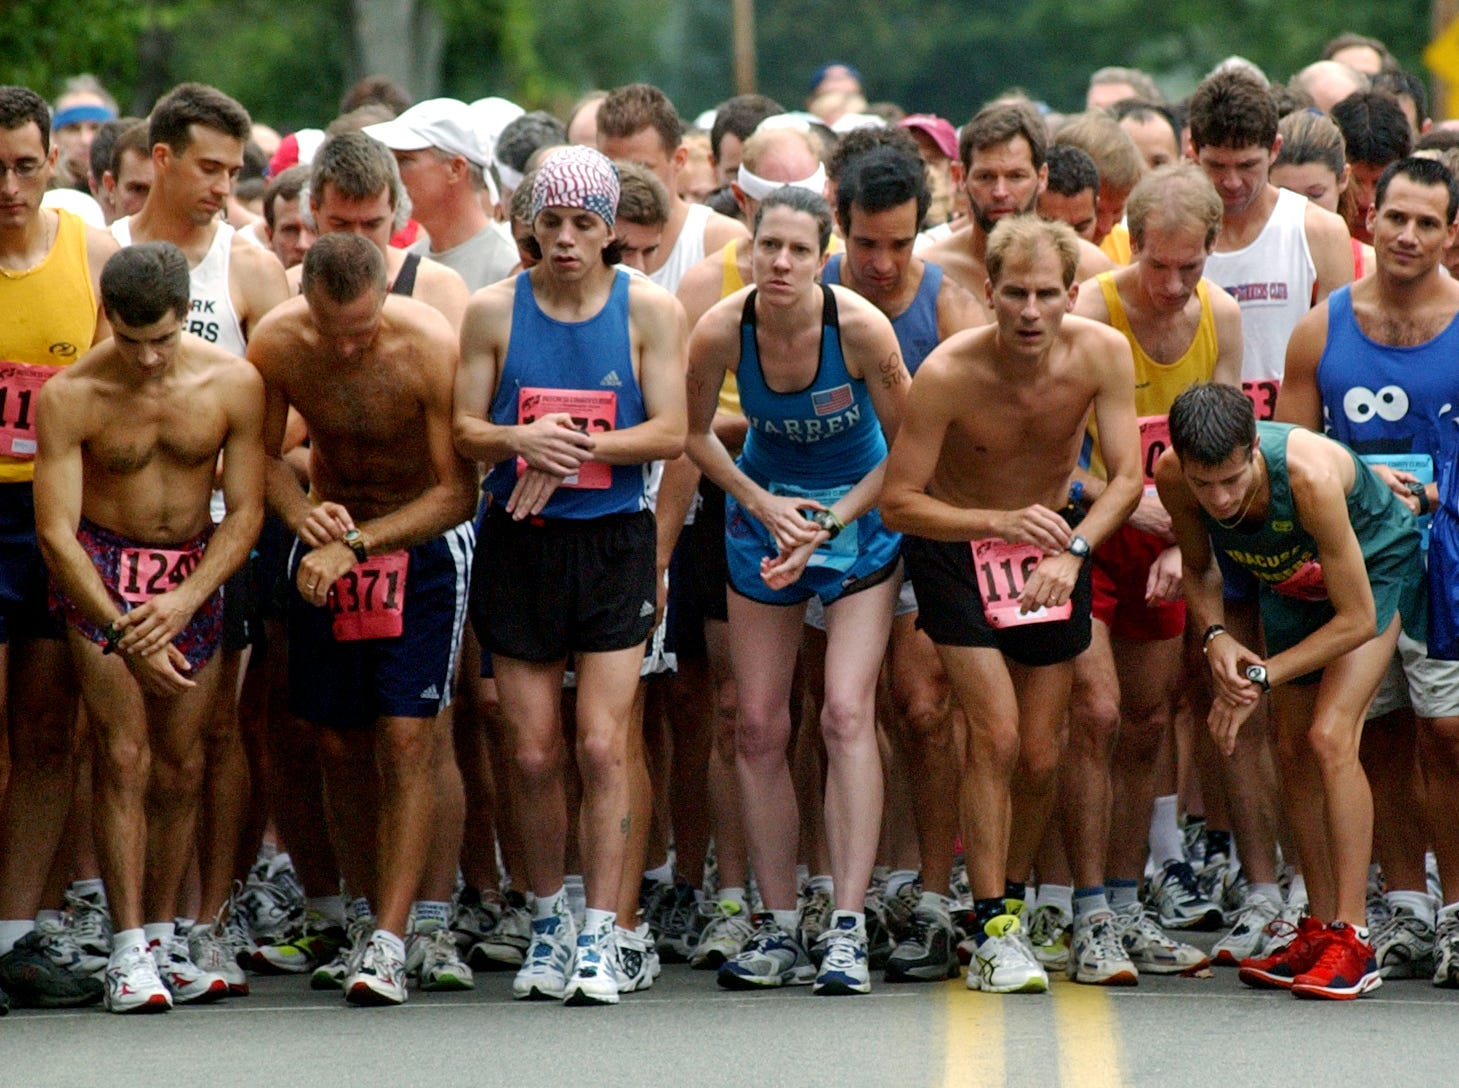 Marathon and half marathon runners start off running on Robinson Lane at the Dutchess County Classic on Sunday, Sept. 15, 2002.